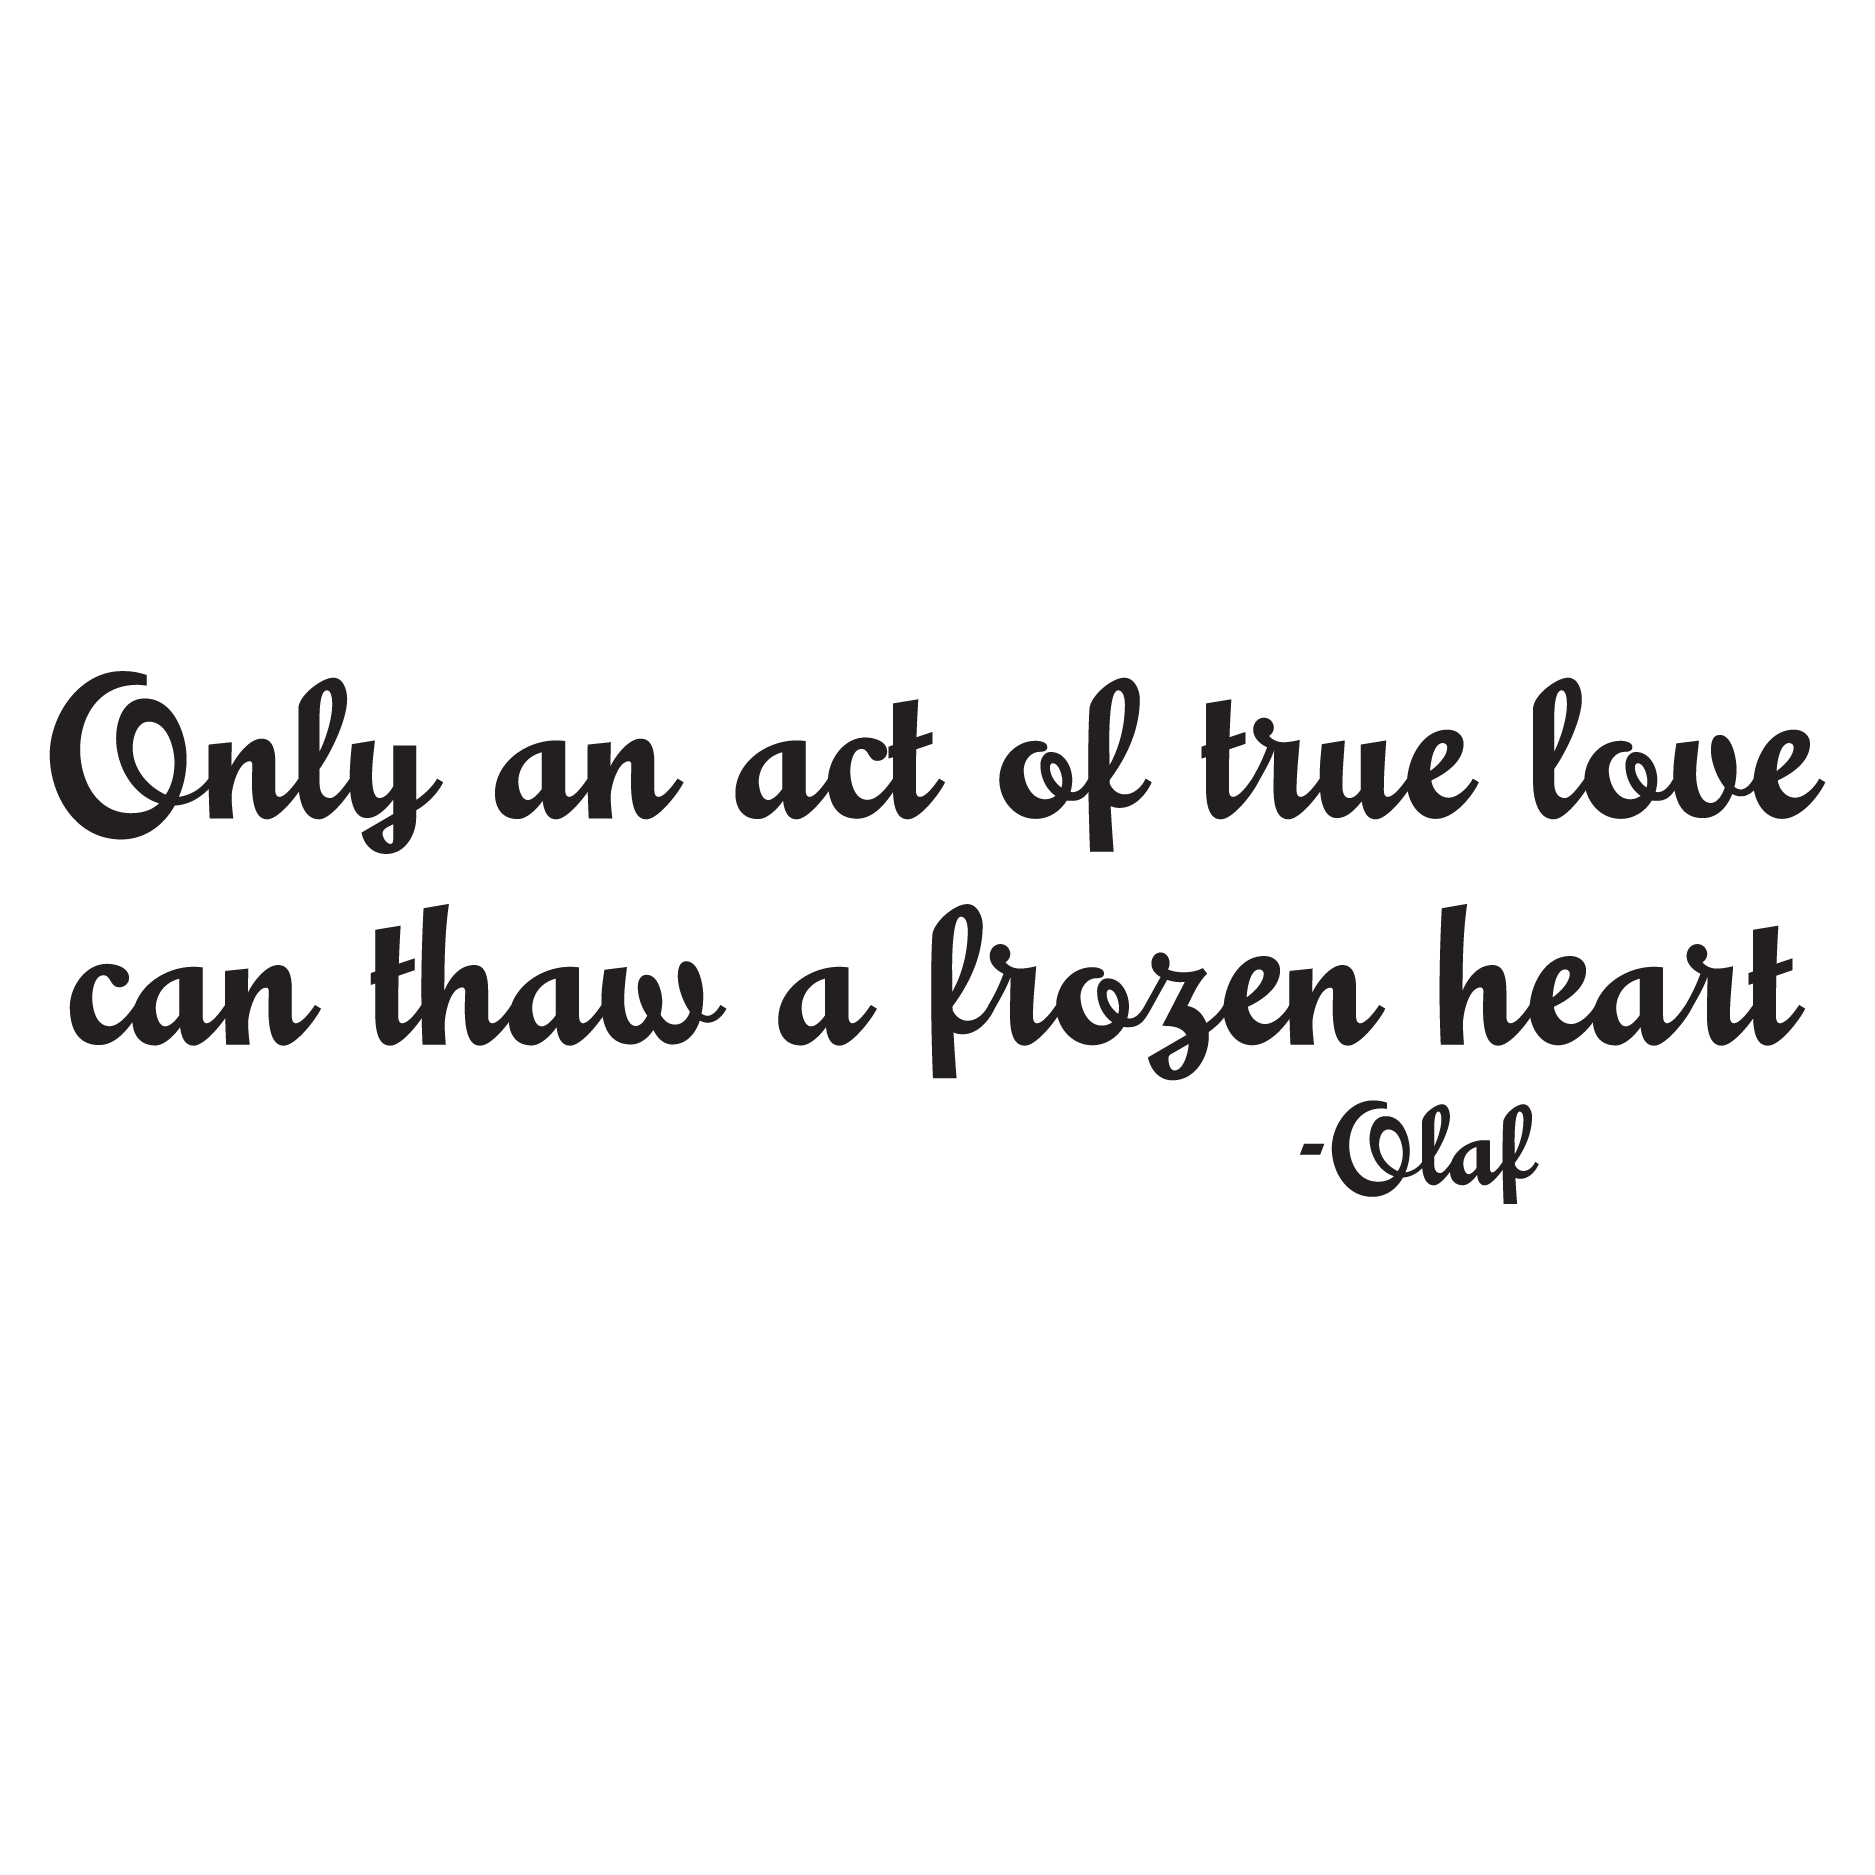 Bible quotes png. Act of true love